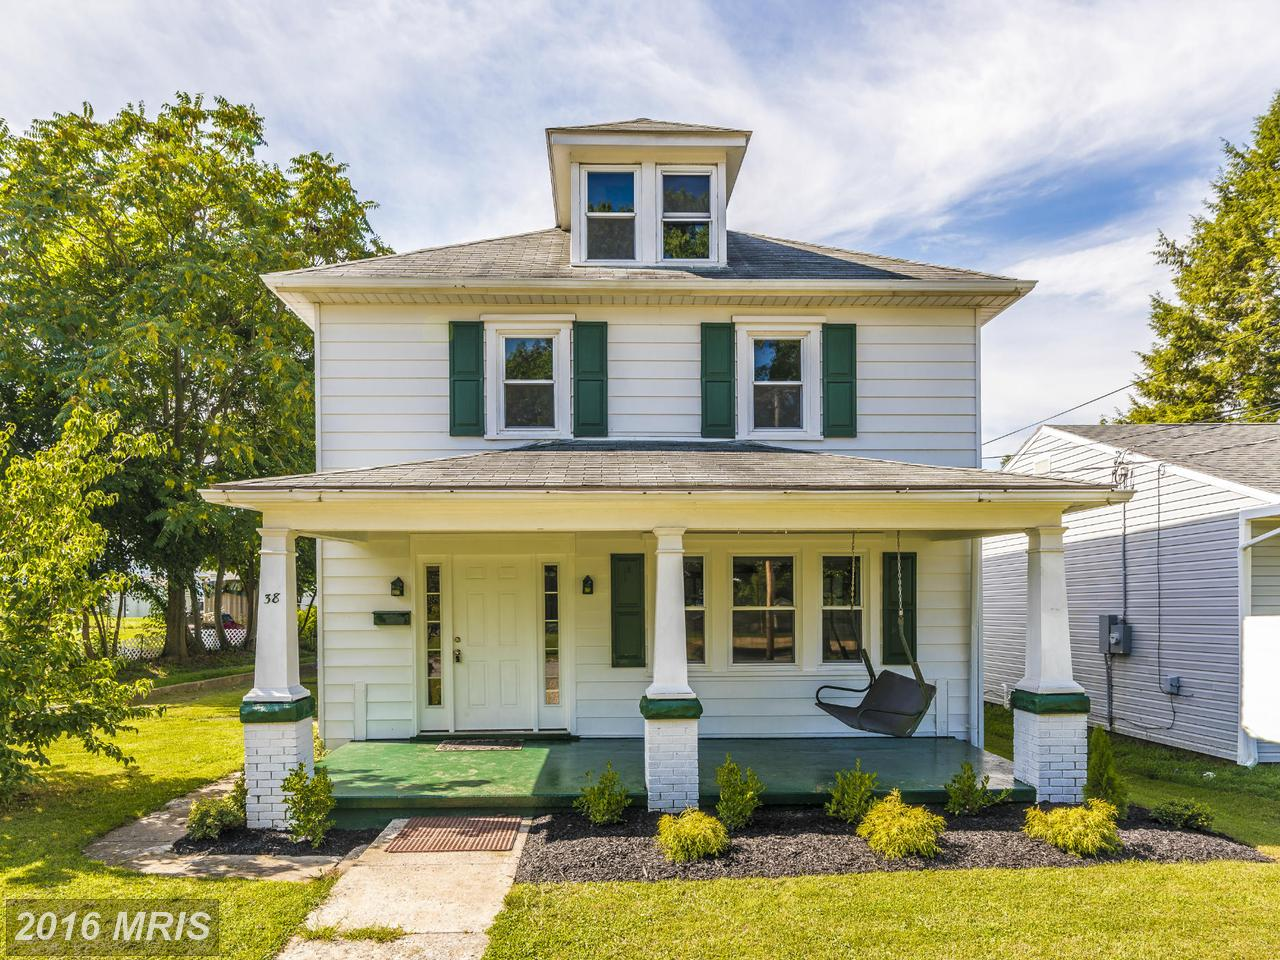 3 bedroom homes for sale in hagerstown md hagerstown - 3 bedroom townhomes for rent in md ...